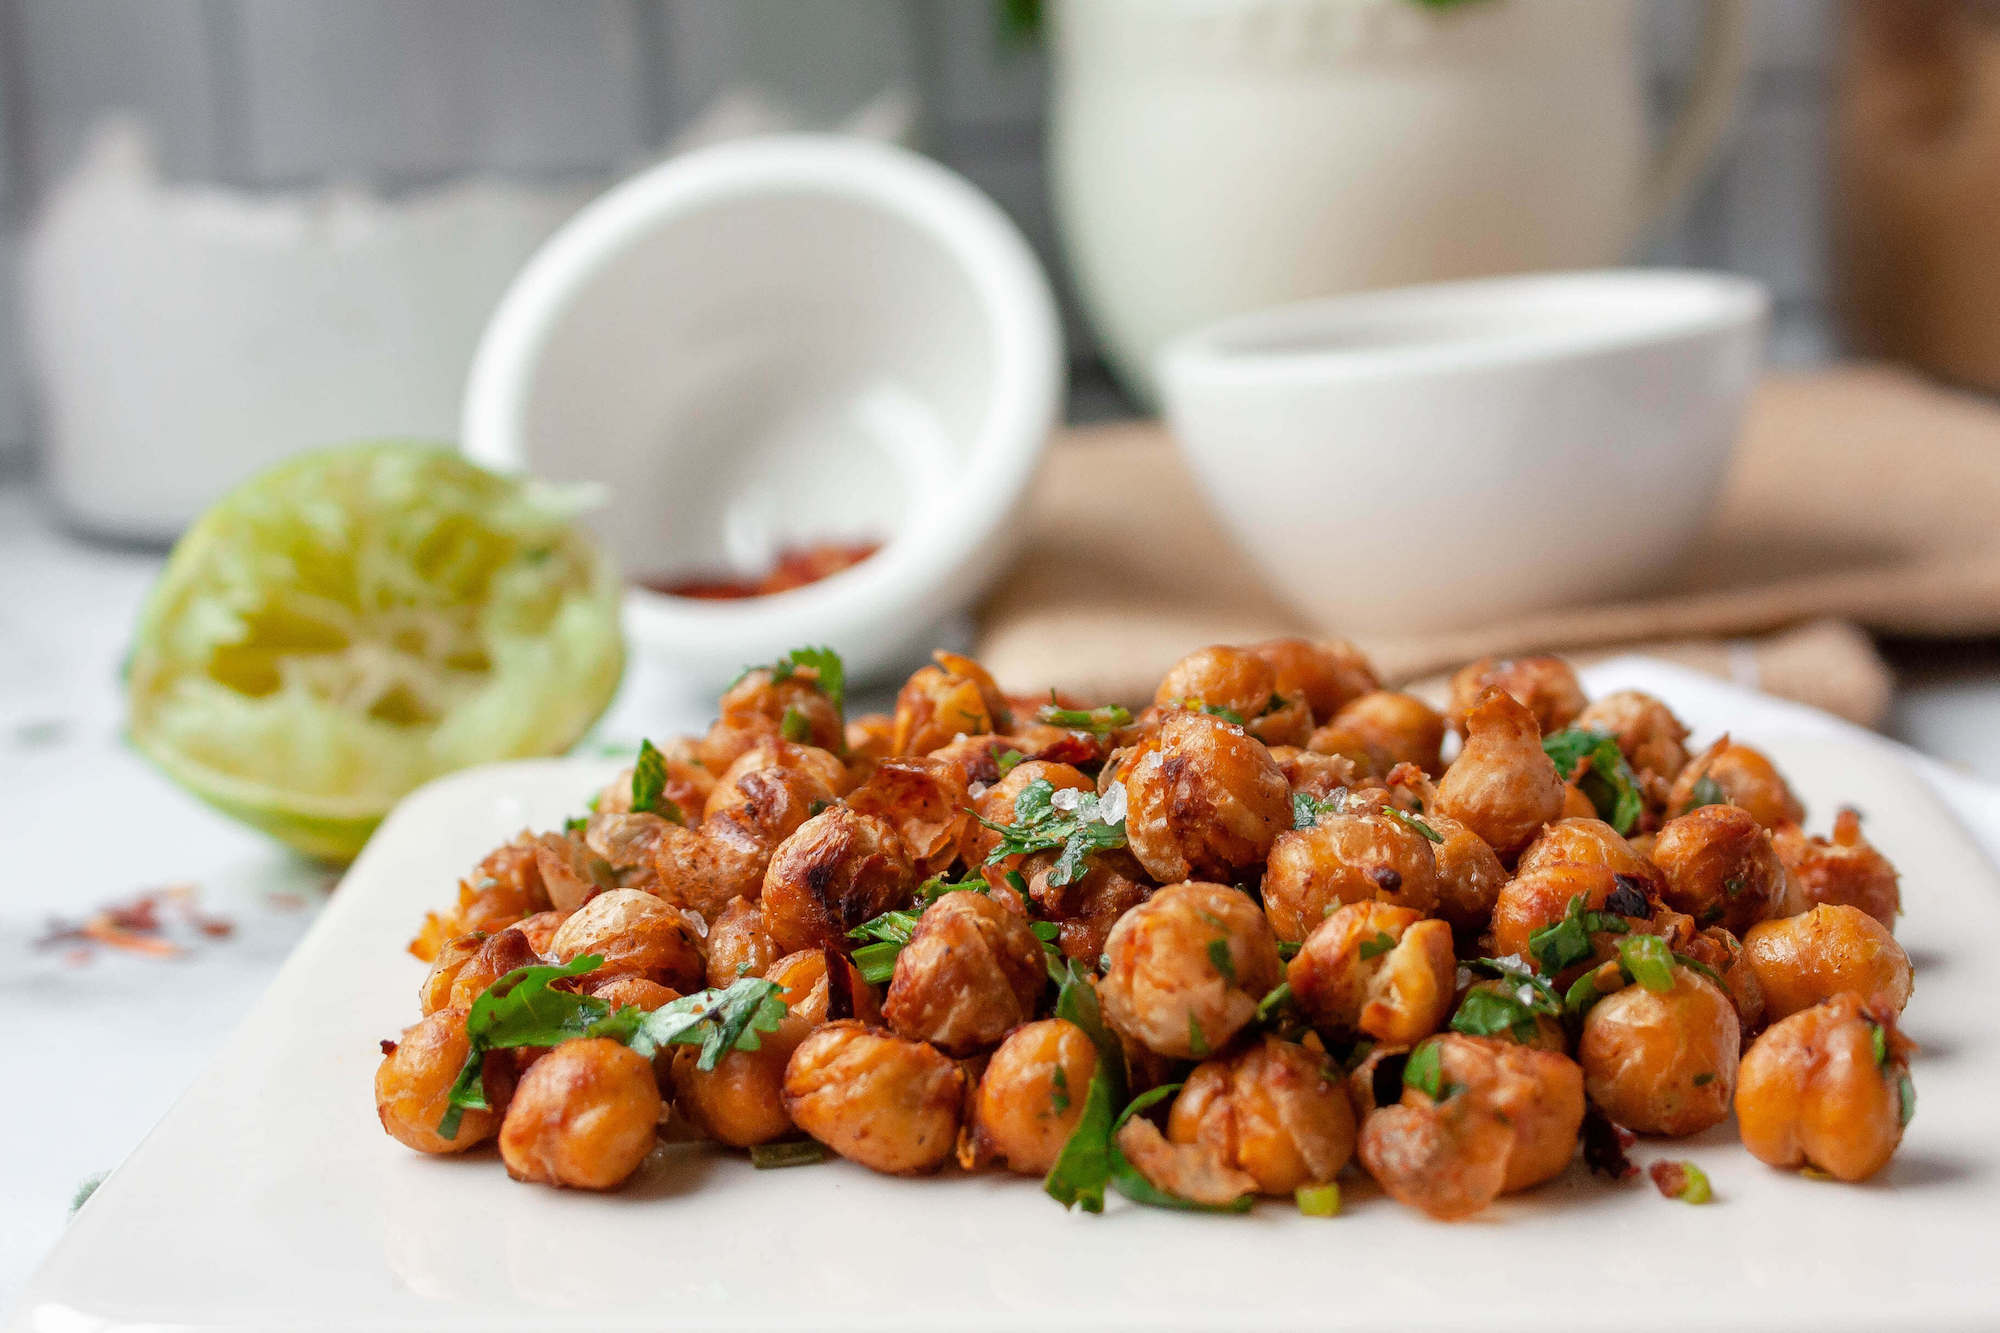 side angle shot of chili lime roasted chickpeas on serving plate